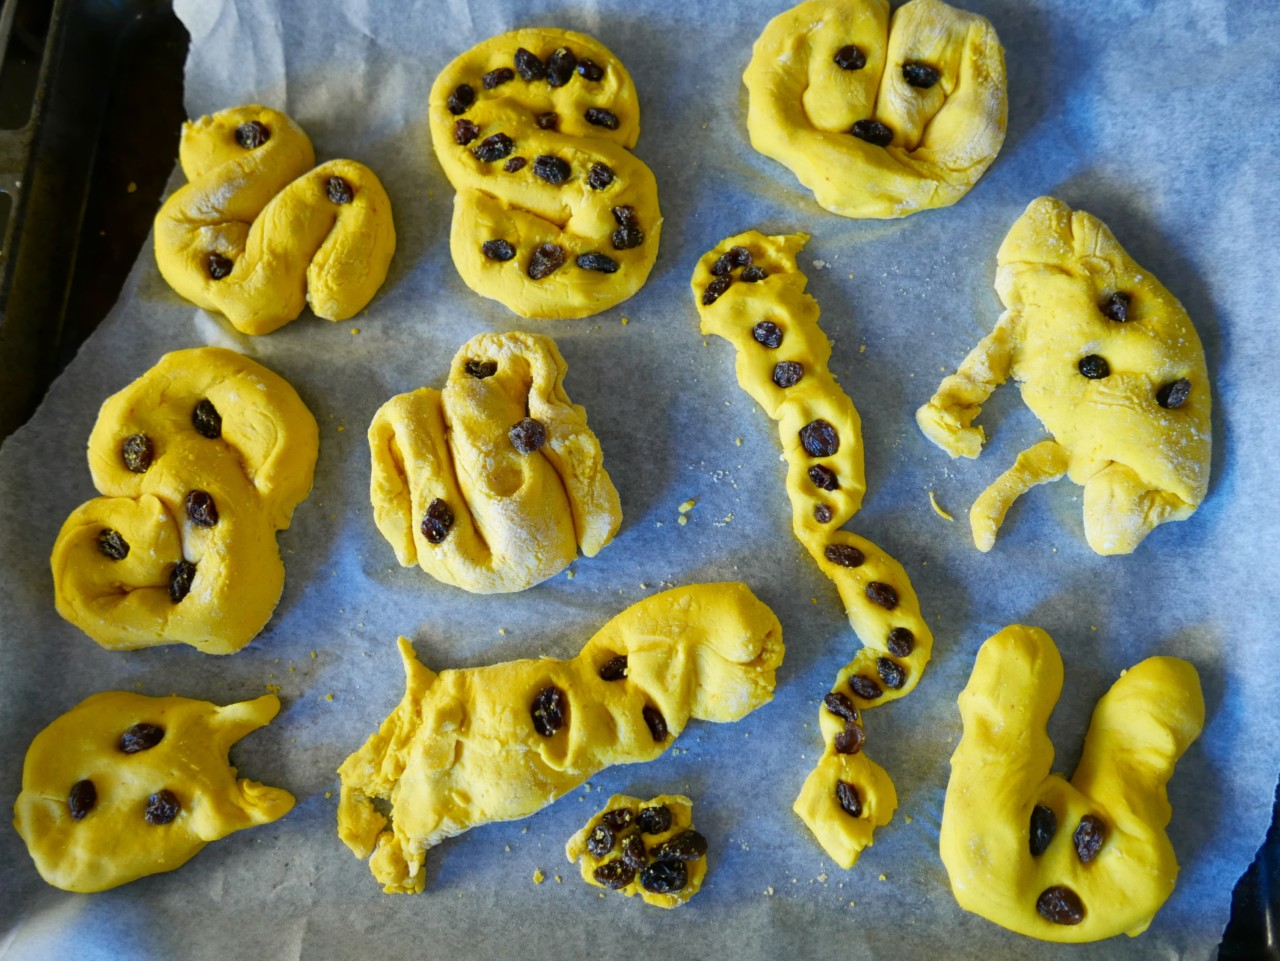 glutenfri-lussekatter-baking-barn-jul